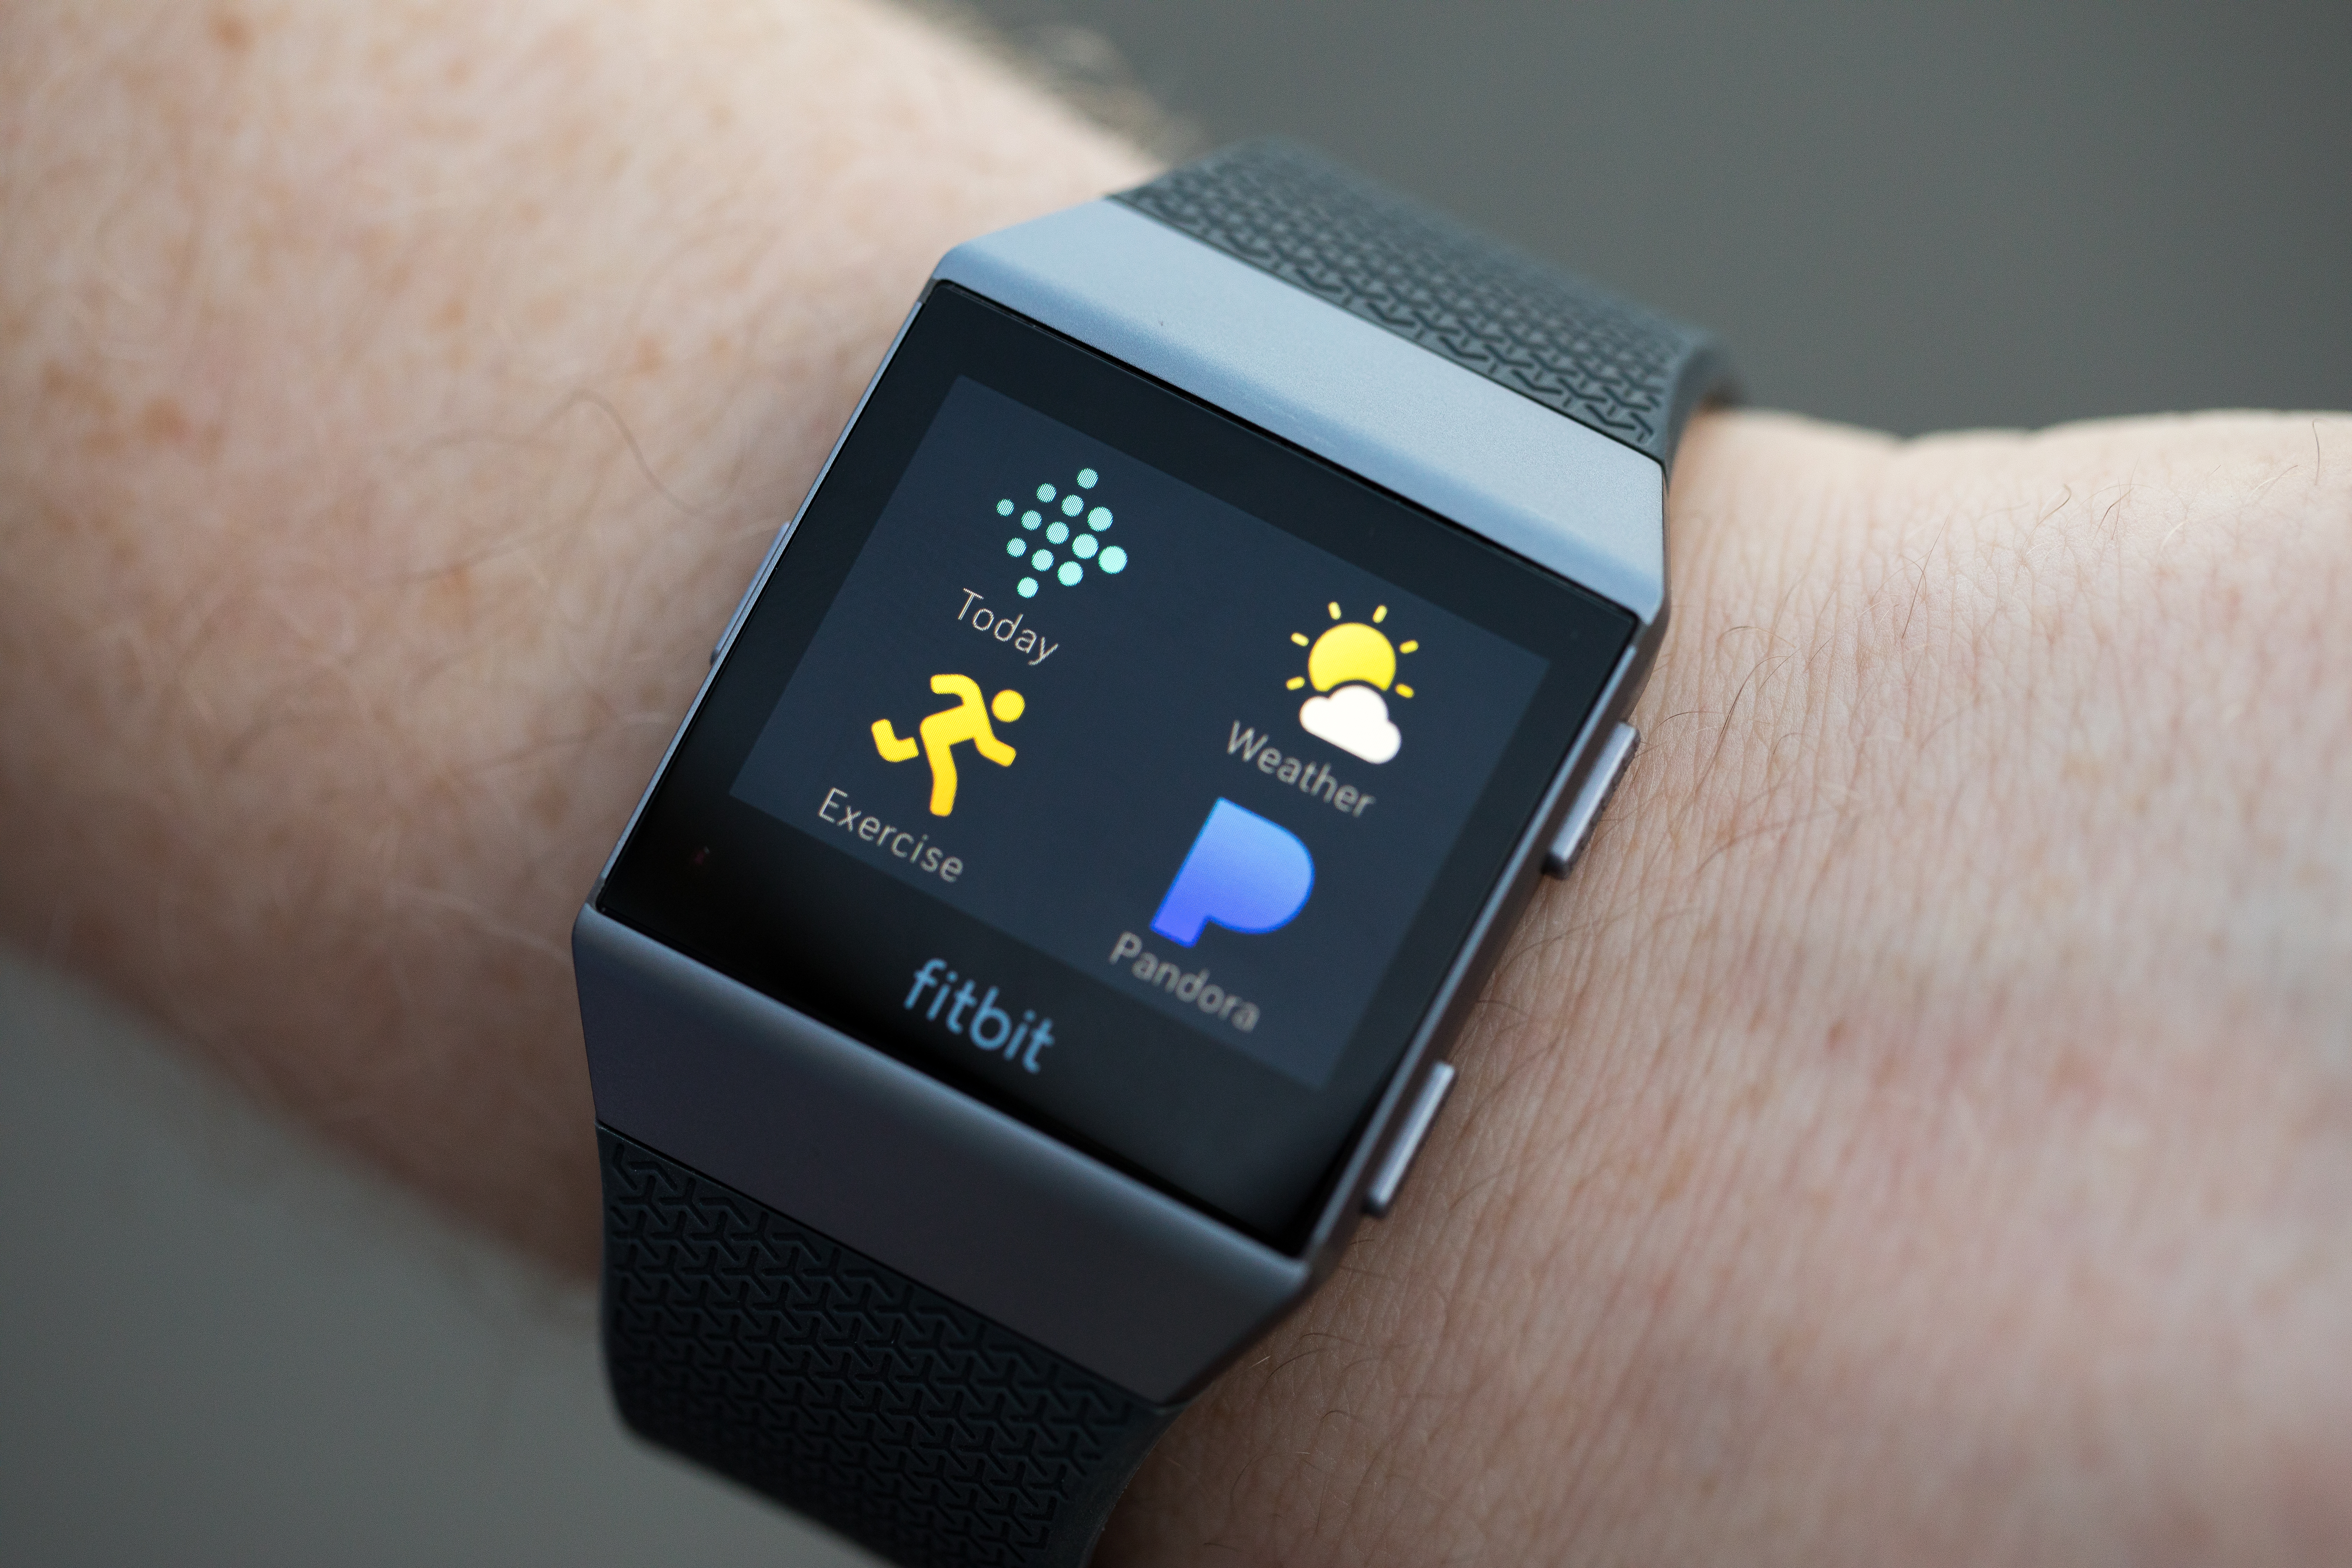 Fitbit's Ionic smartwatch is getting 60 new apps including Yelp, Uber and Deezer